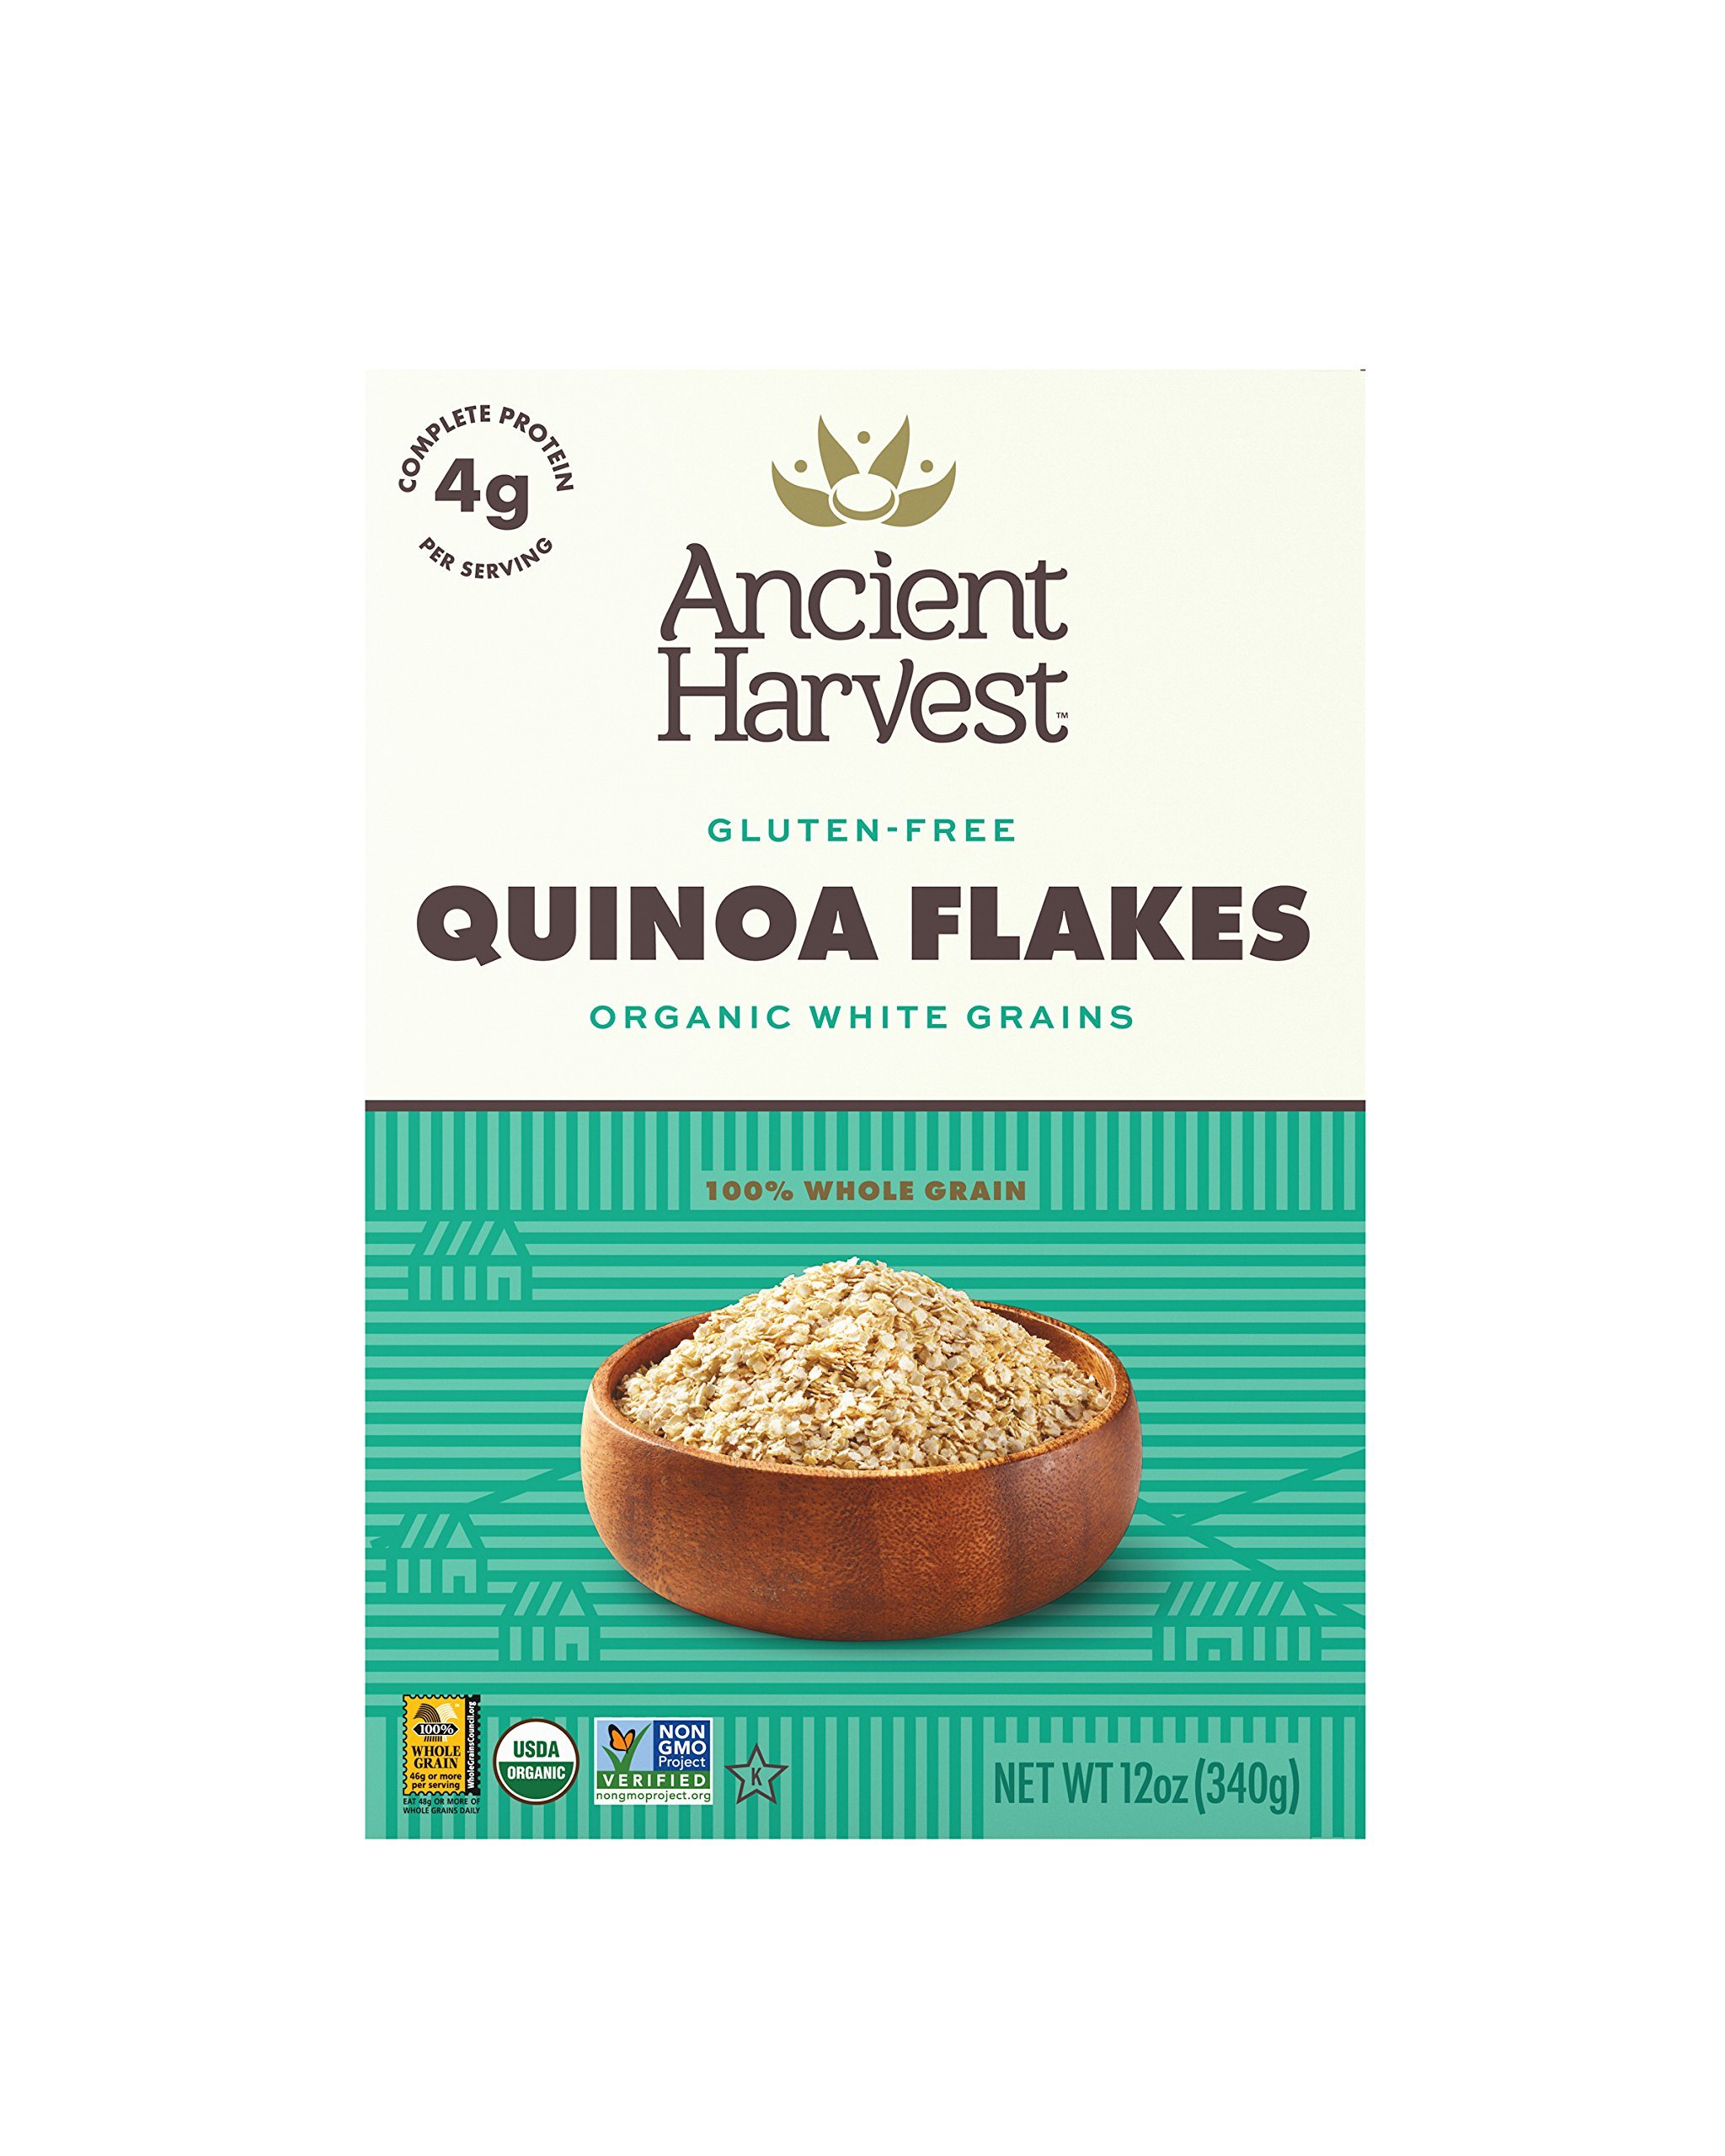 Ancient Harvest Organic Gluten-Free 100% Whole Grain Quinoa Flakes, 12 oz Box (Pack of 6), A Natural Substitution to Oatmeal or Wheat-Based Cereals